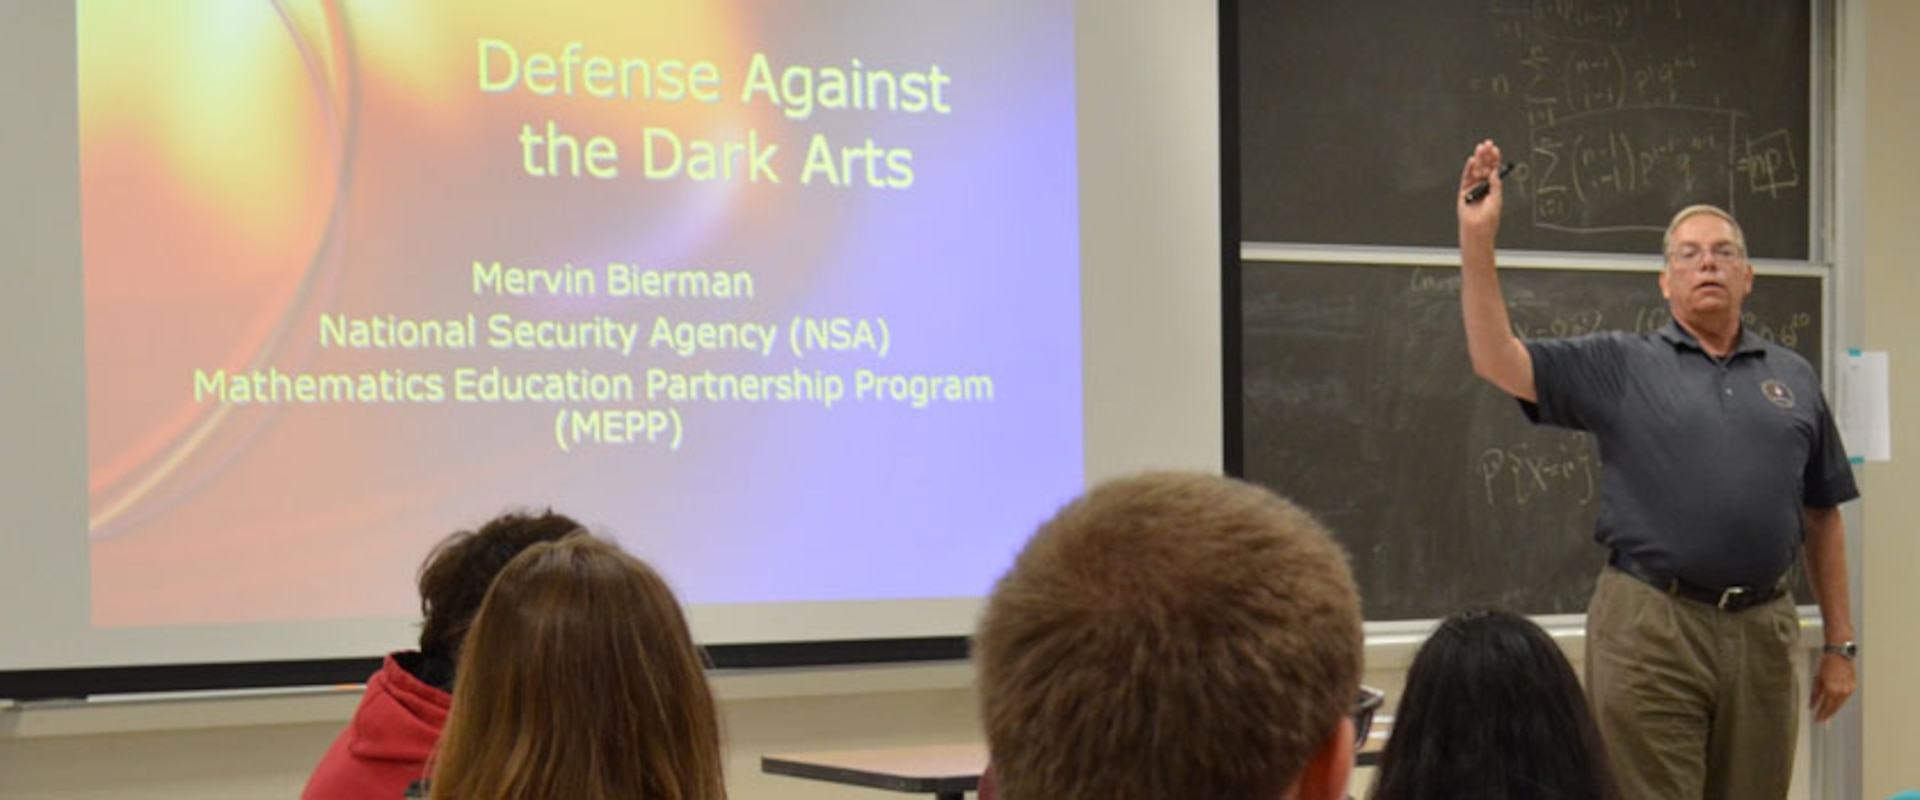 NSA employee Mervin Bierman gave a July presentation to talented high school students in a Rutgers University math program.